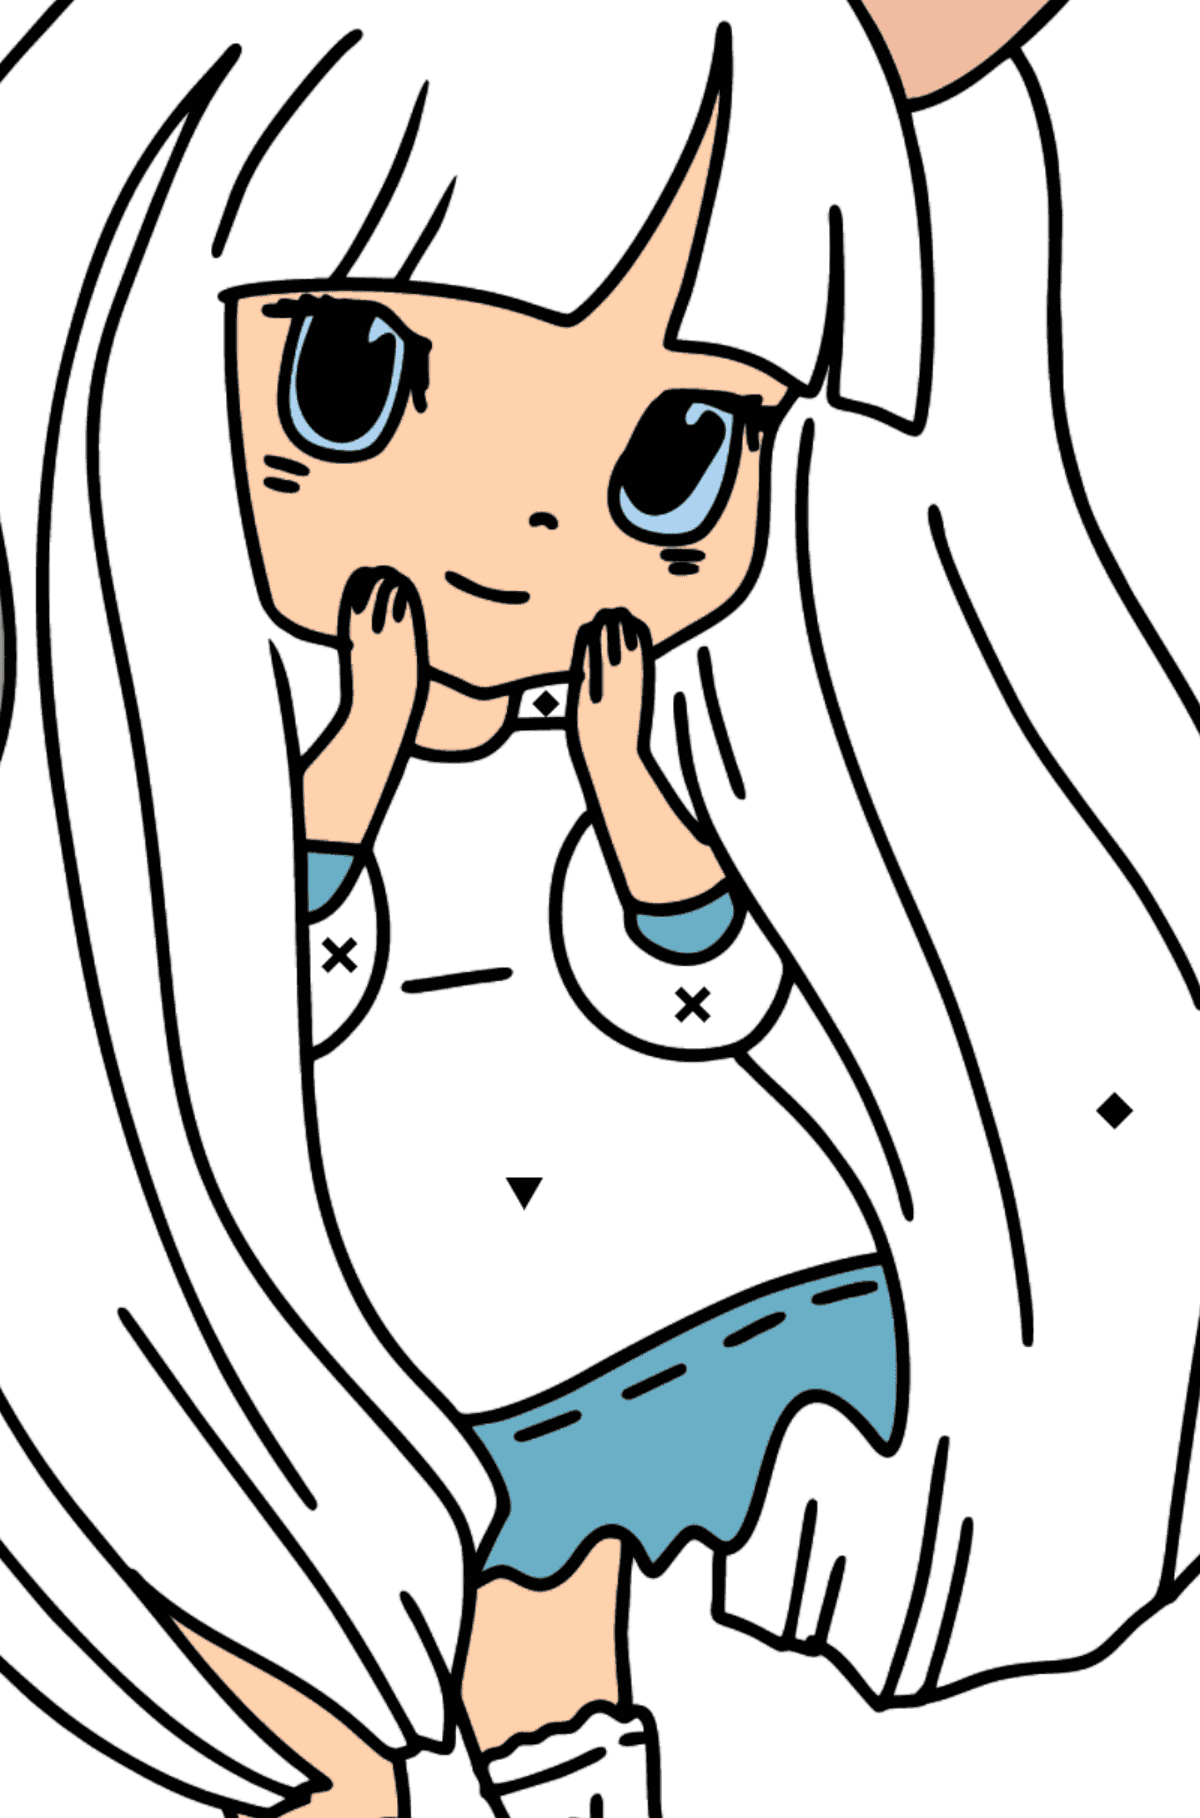 Anime Bunny Girl Coloring Pages - Coloring by Symbols for Kids